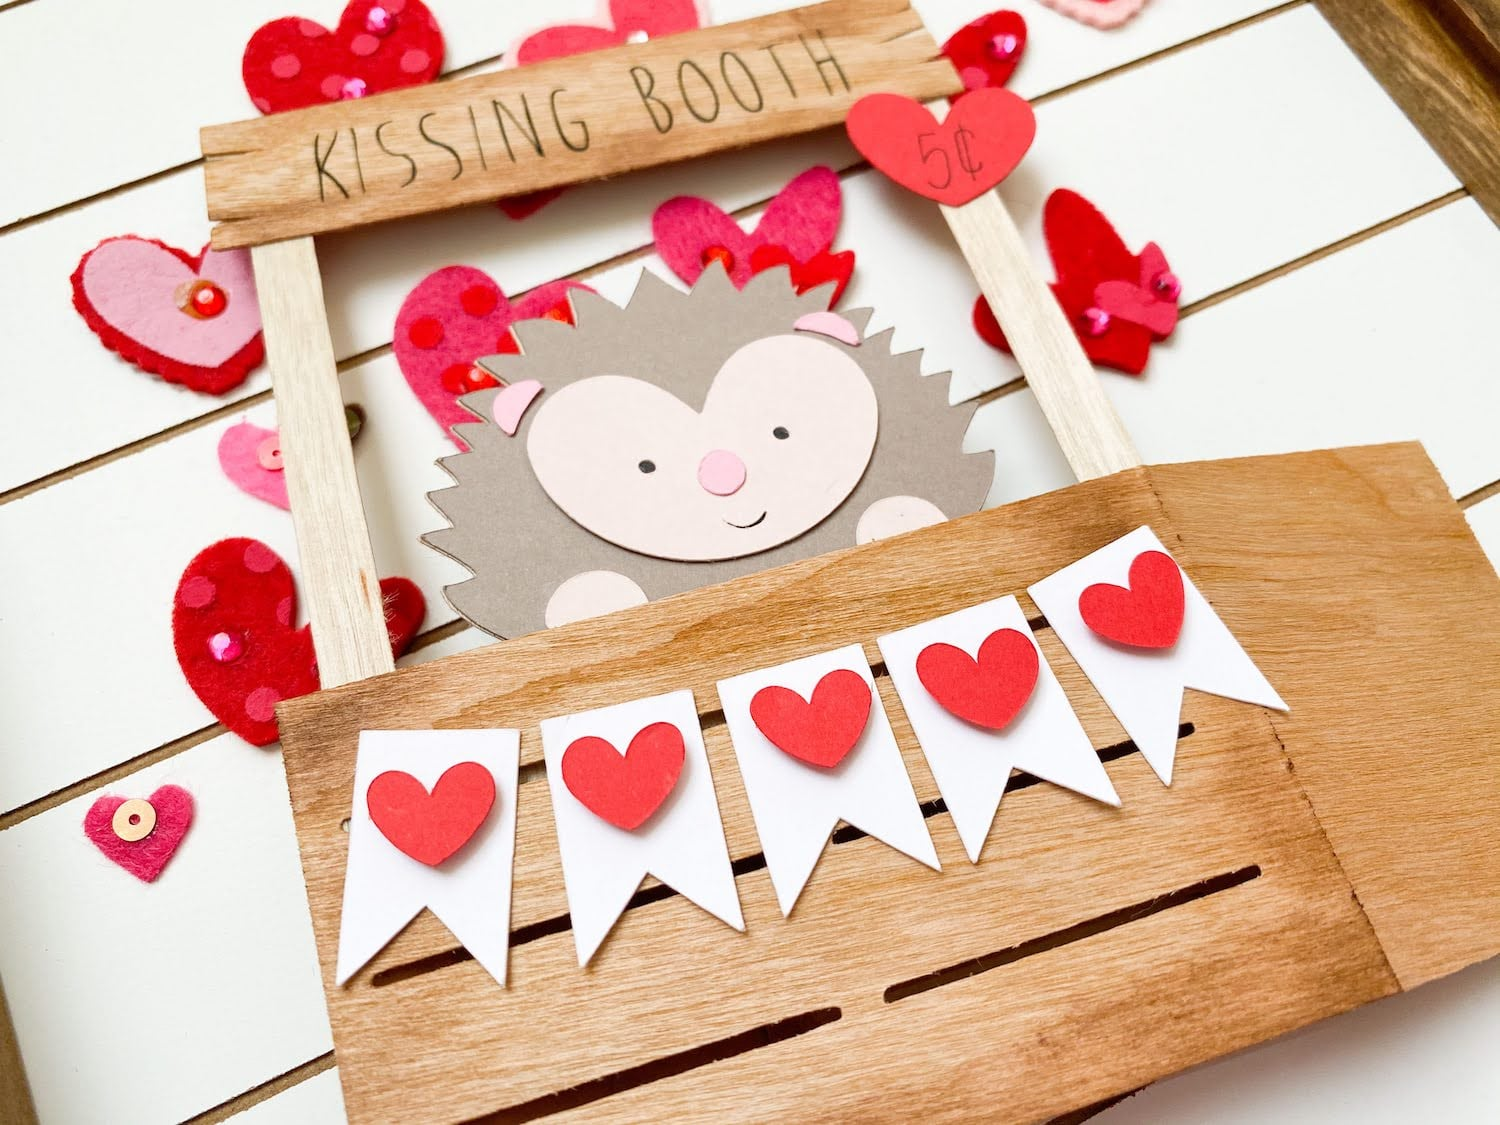 Hedgehog Kissing Booth Pop-Up Cards